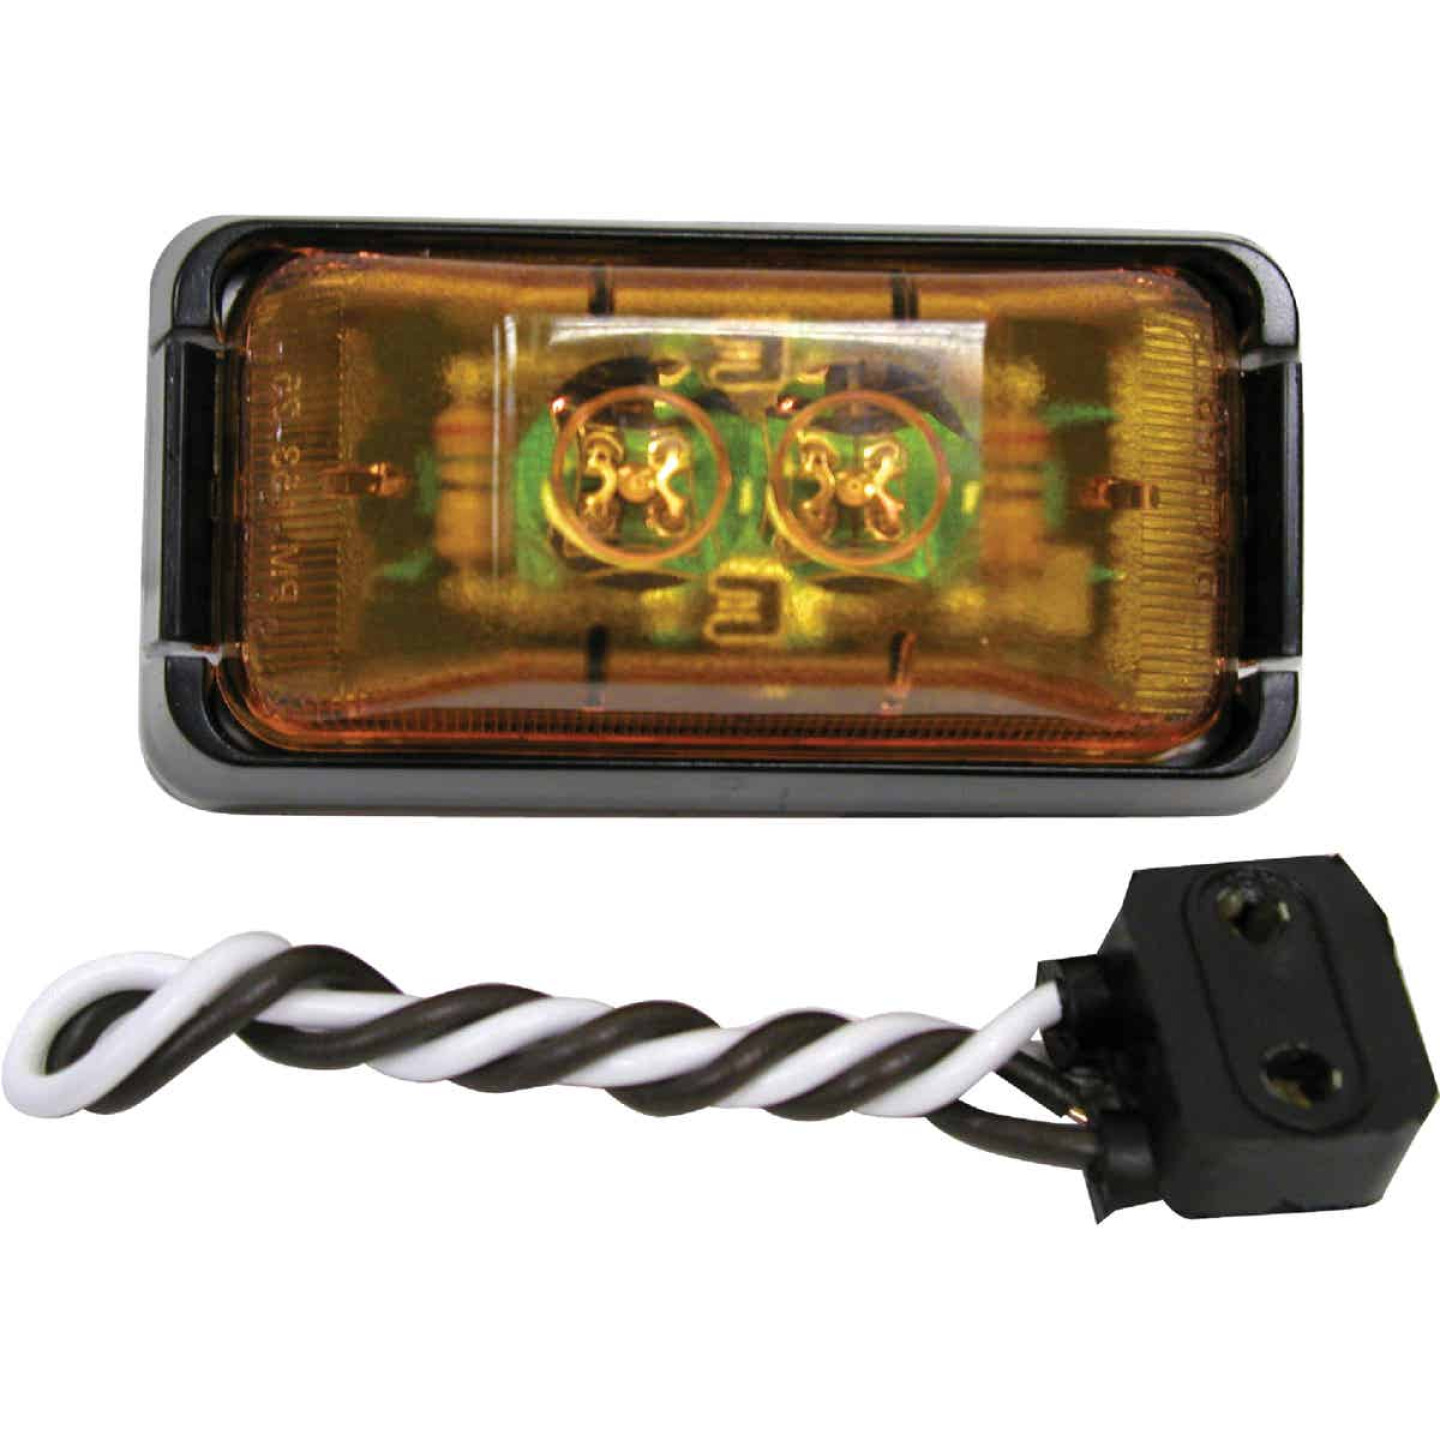 Peterson Rectangle Amber Clearance Light Image 1